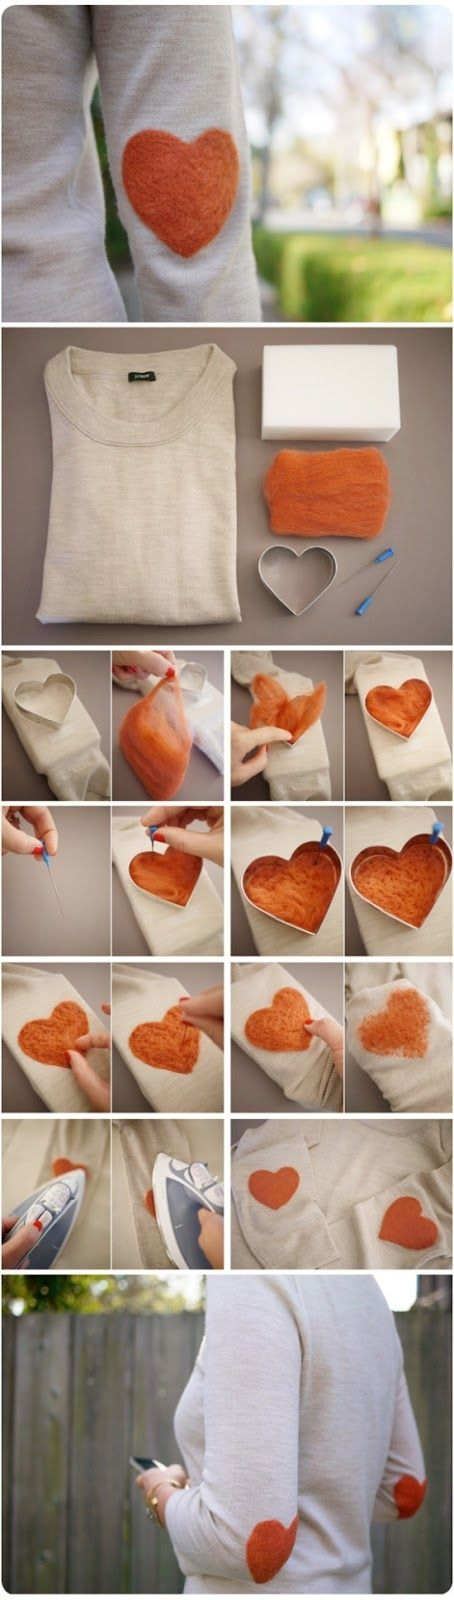 D.I.Y. Heart shaped elbow patches. Swoon.: